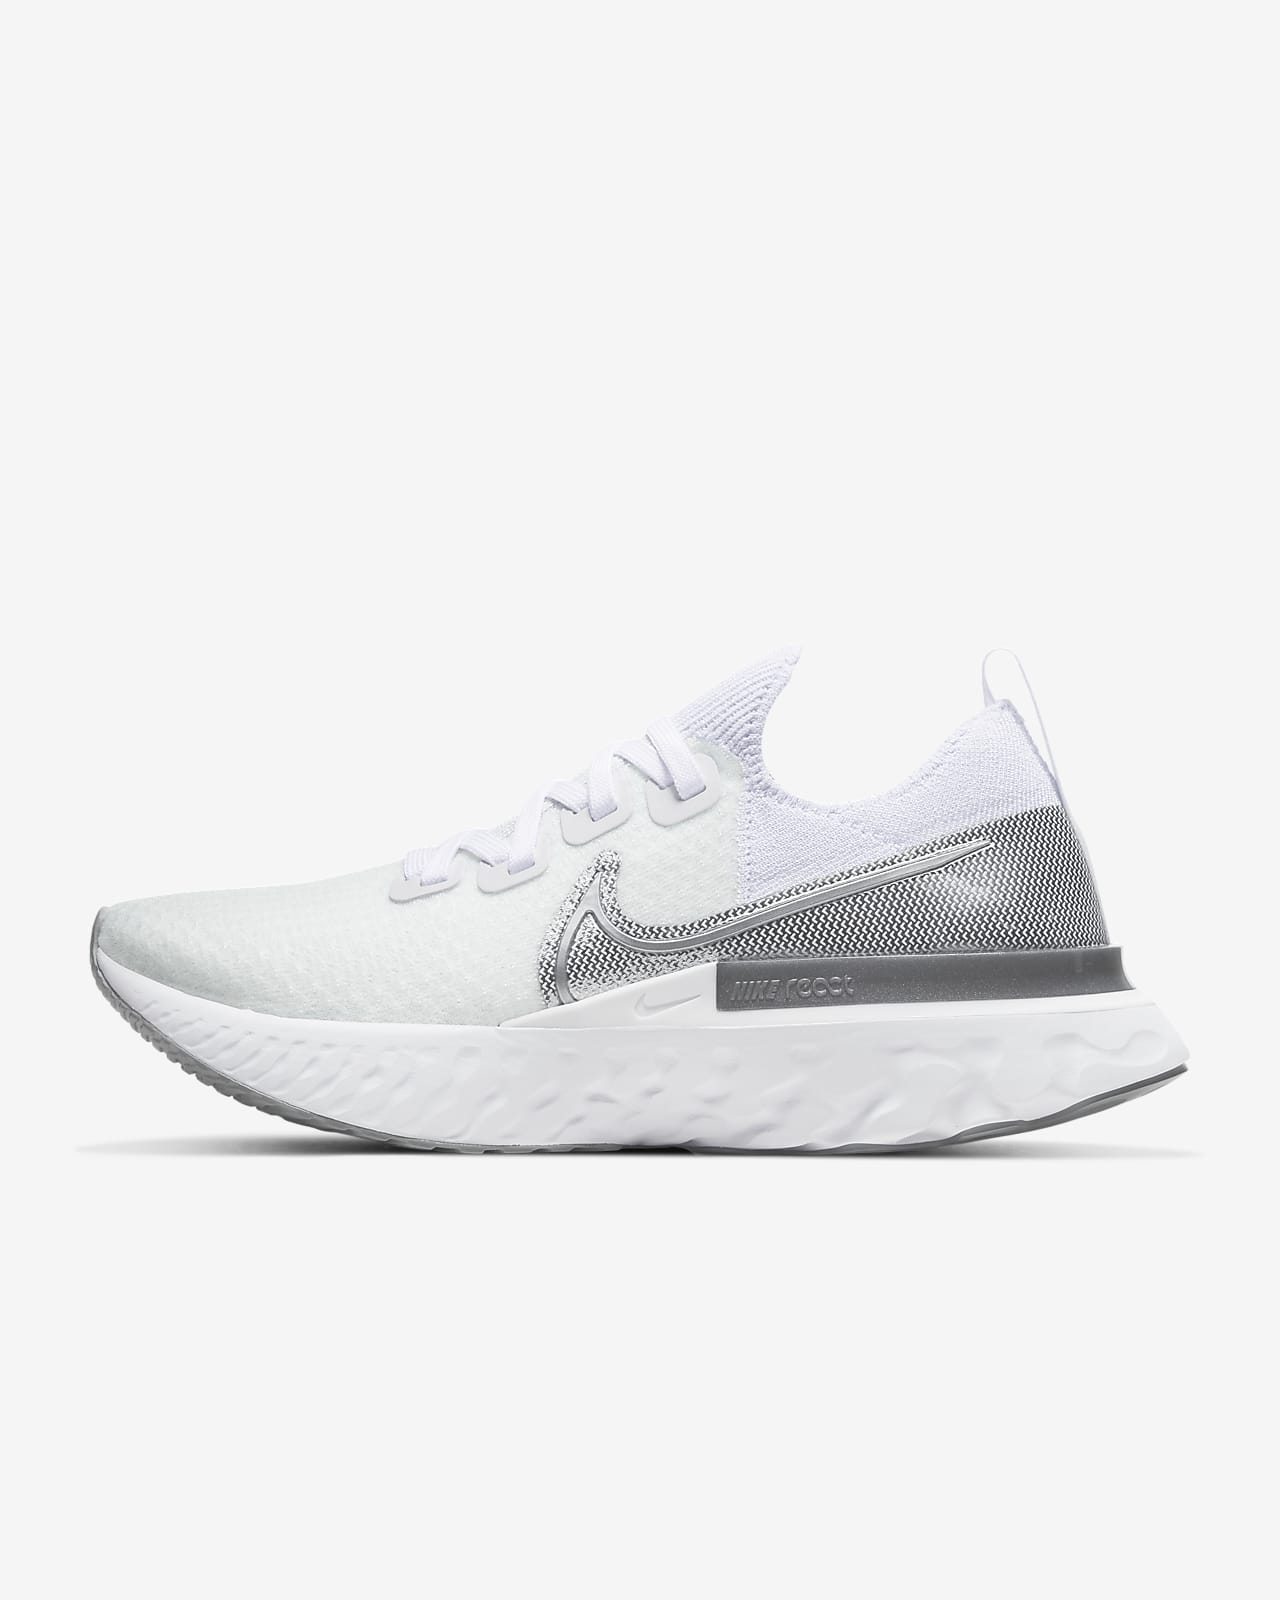 Nike React Infinity Run Flyknit 女款跑鞋